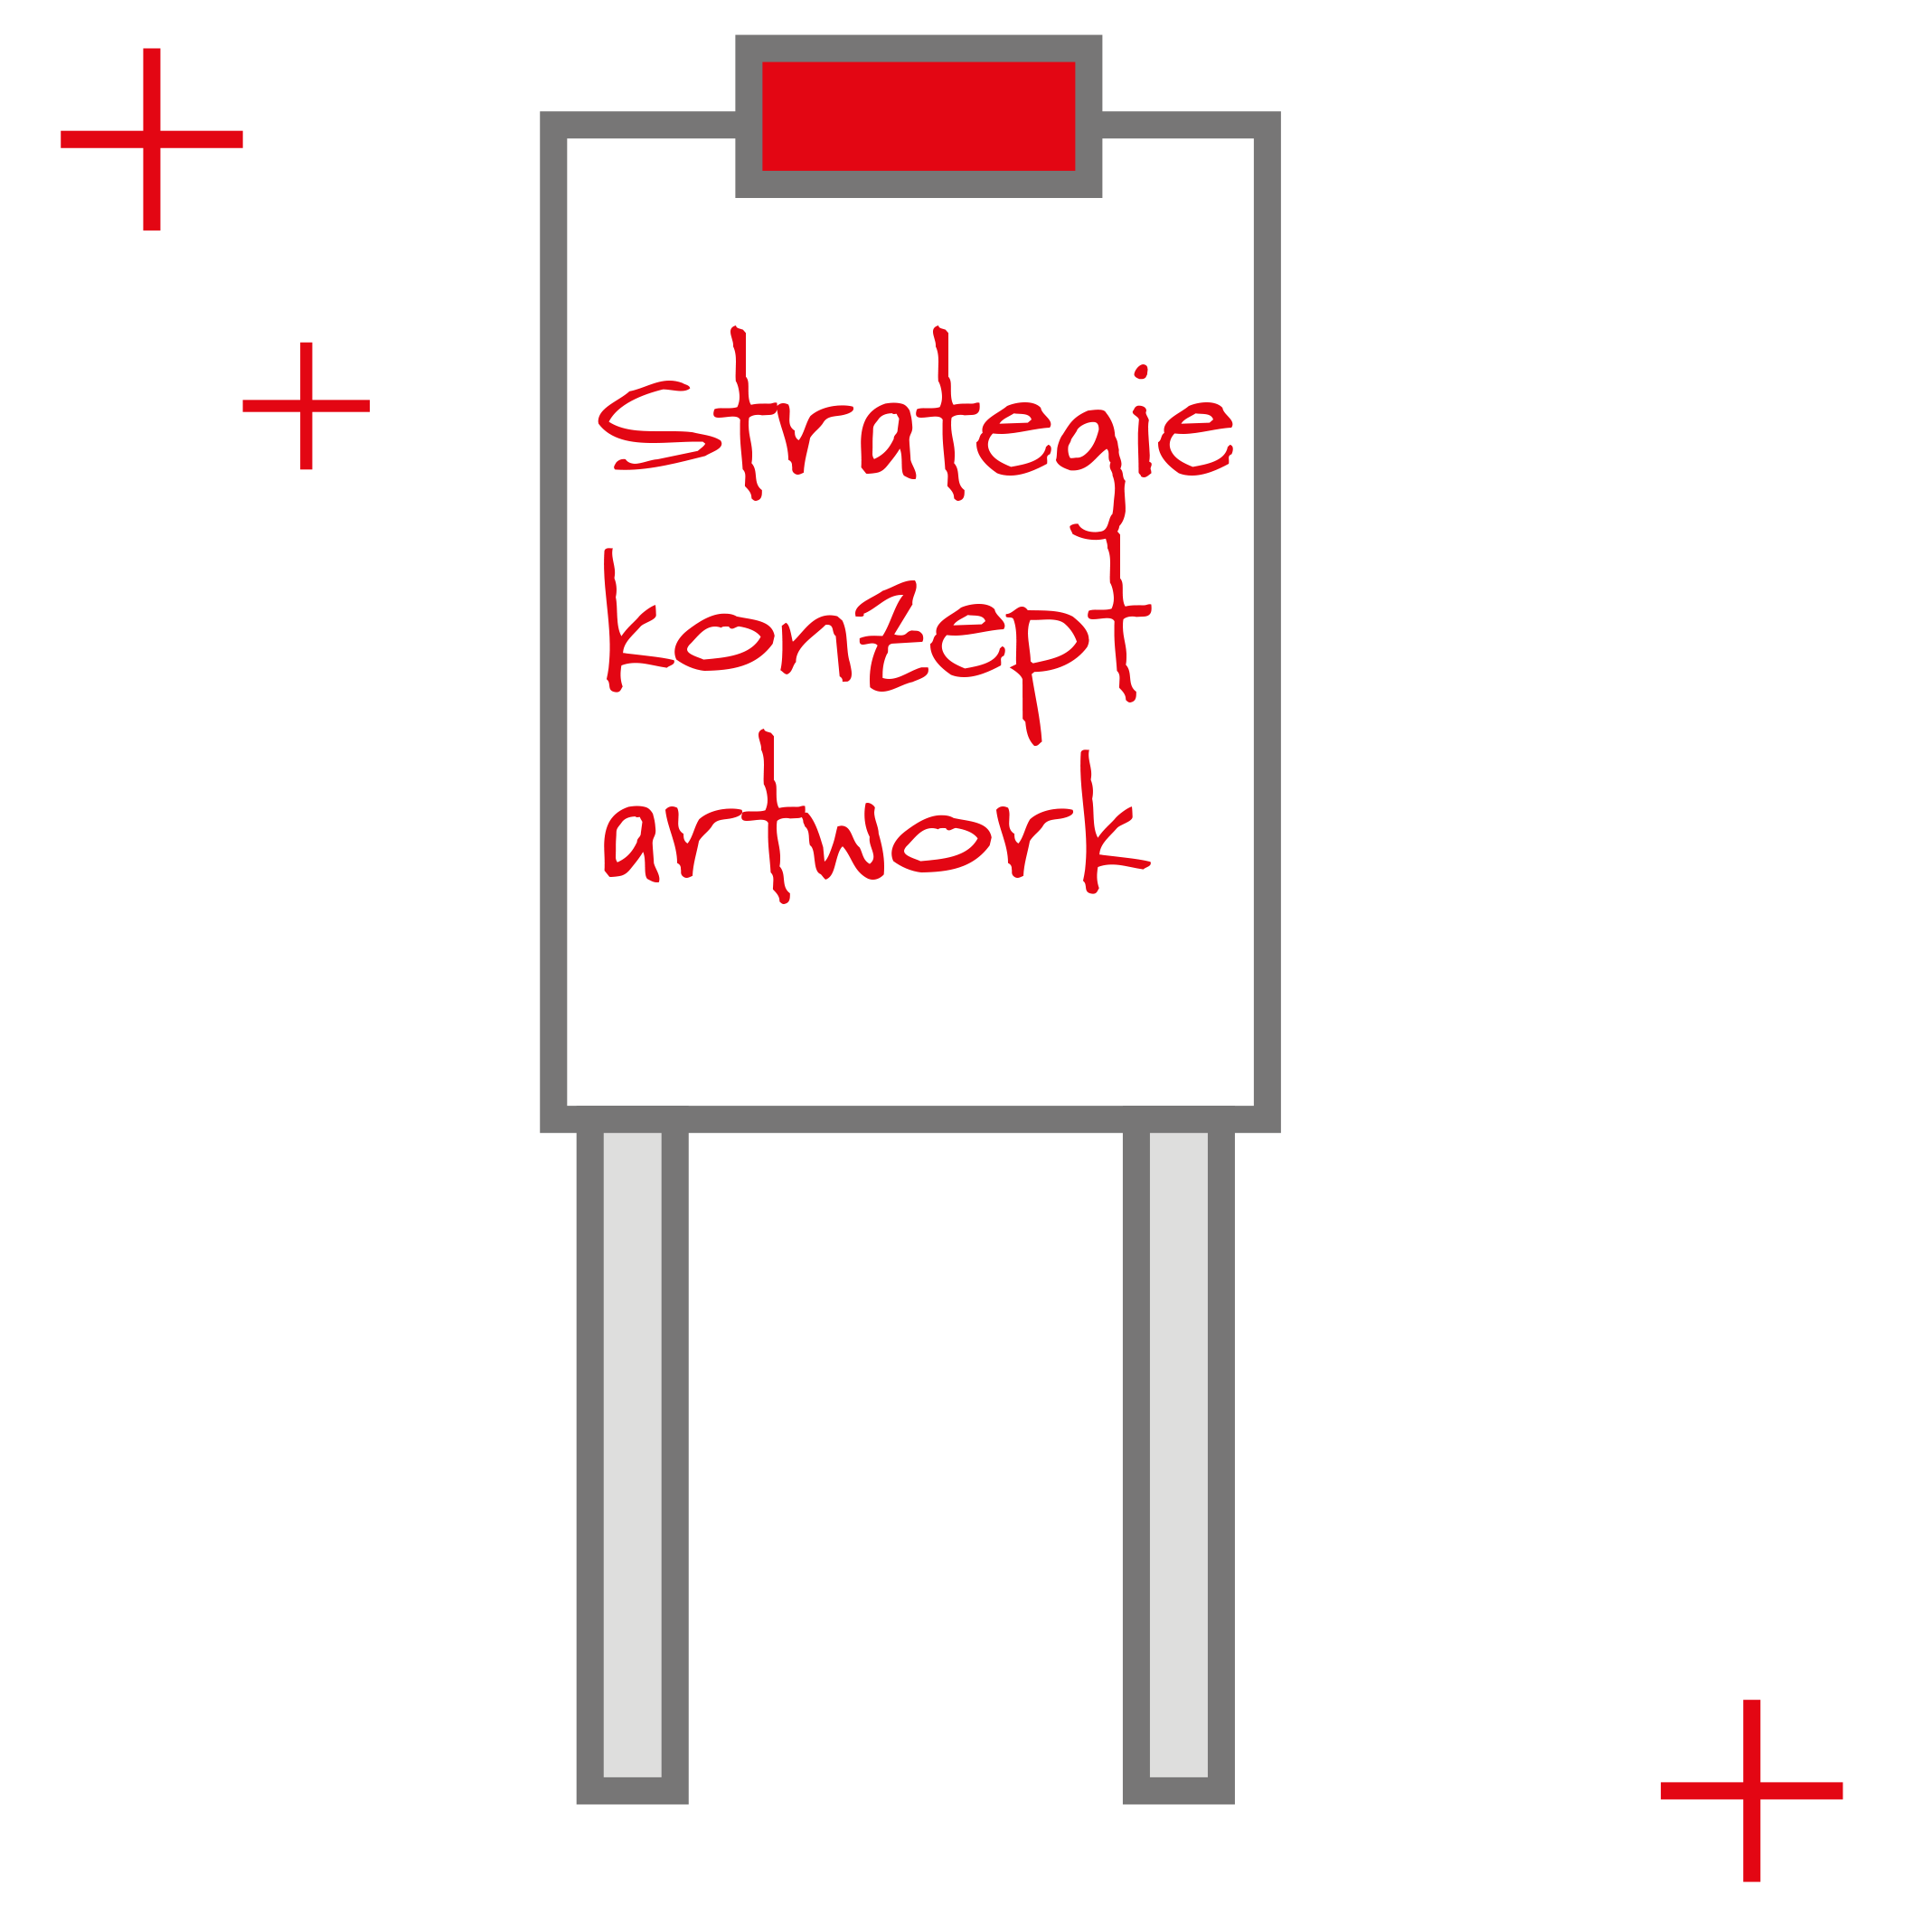 Puregraphik Strategie Konzept Artwork